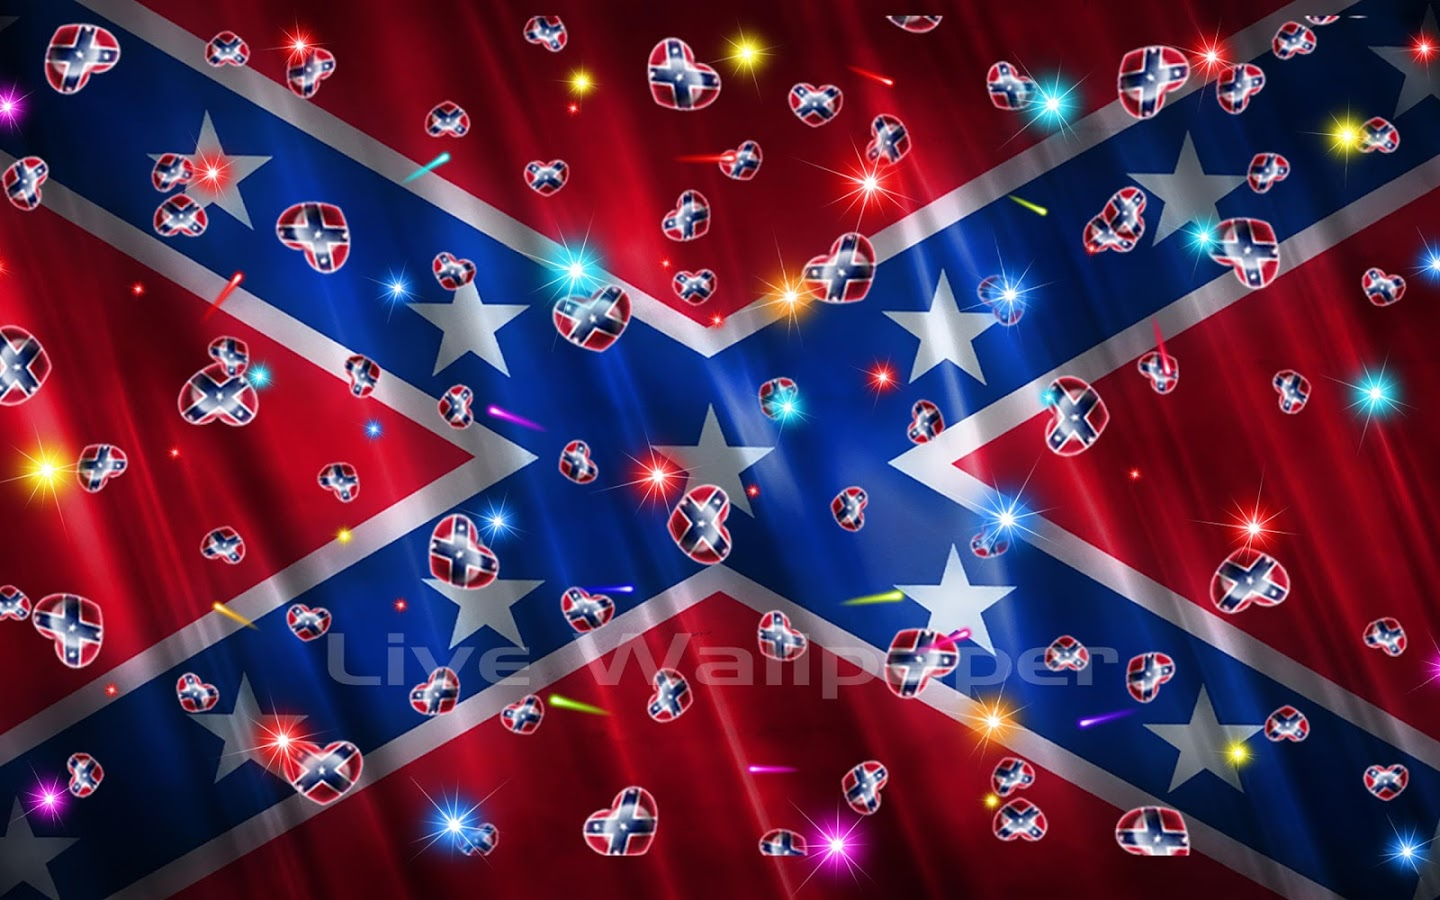 Rebel Flag Heart   screenshot 1440x900